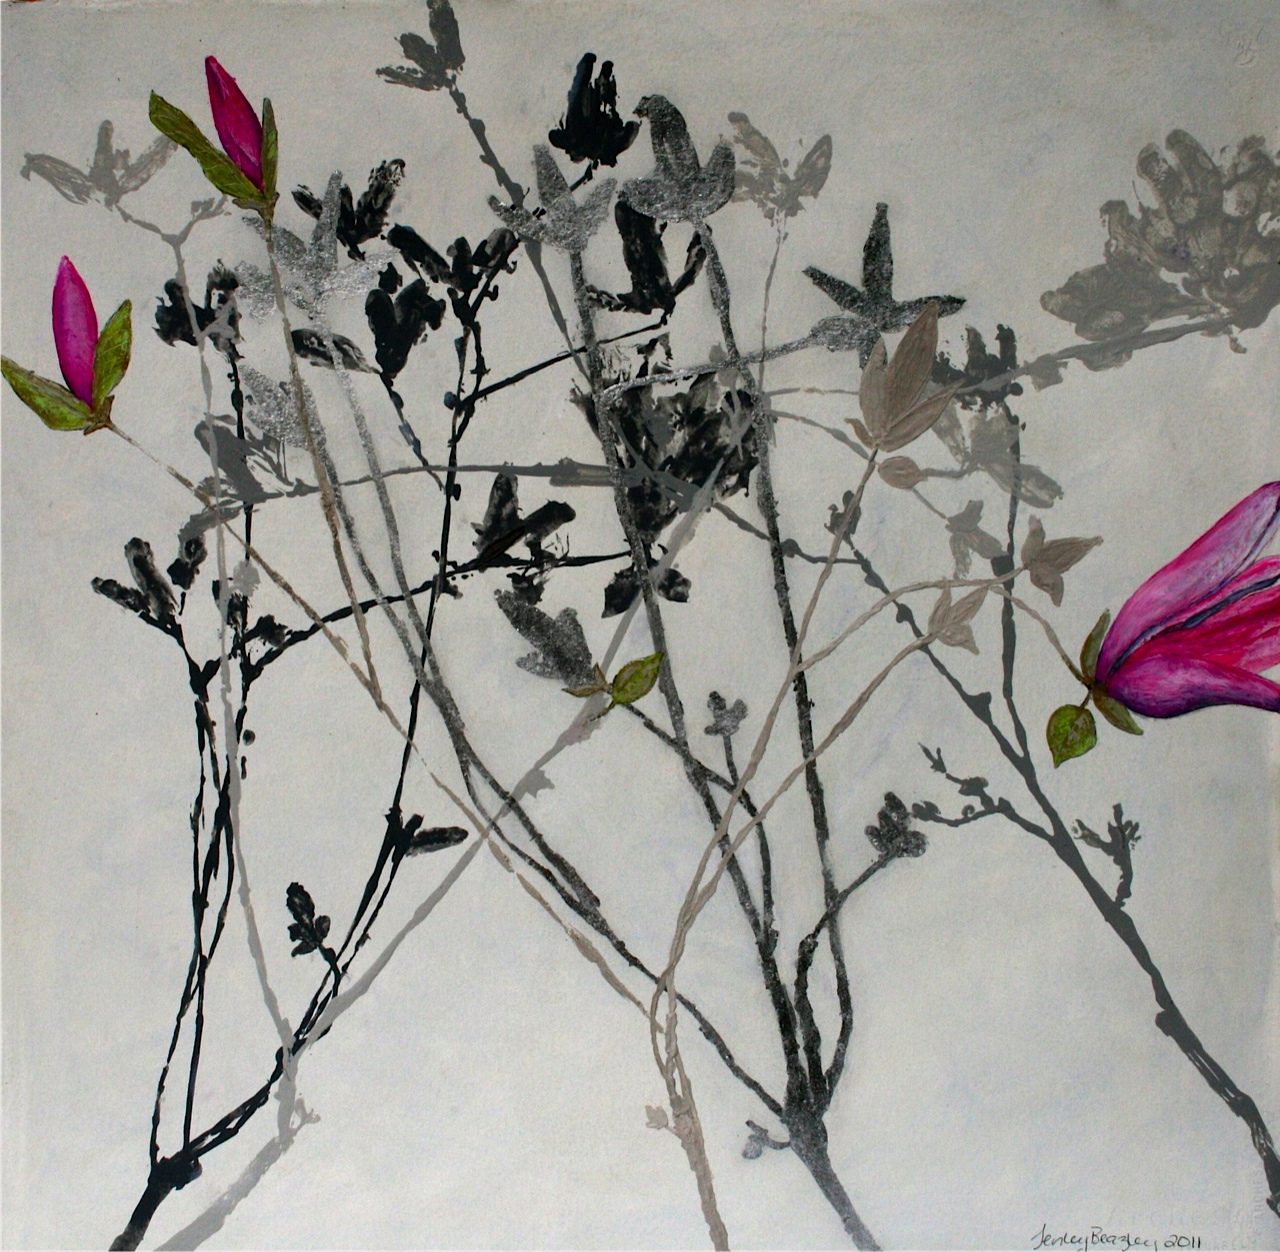 Willow VI - Tulip Magnolia (2011)